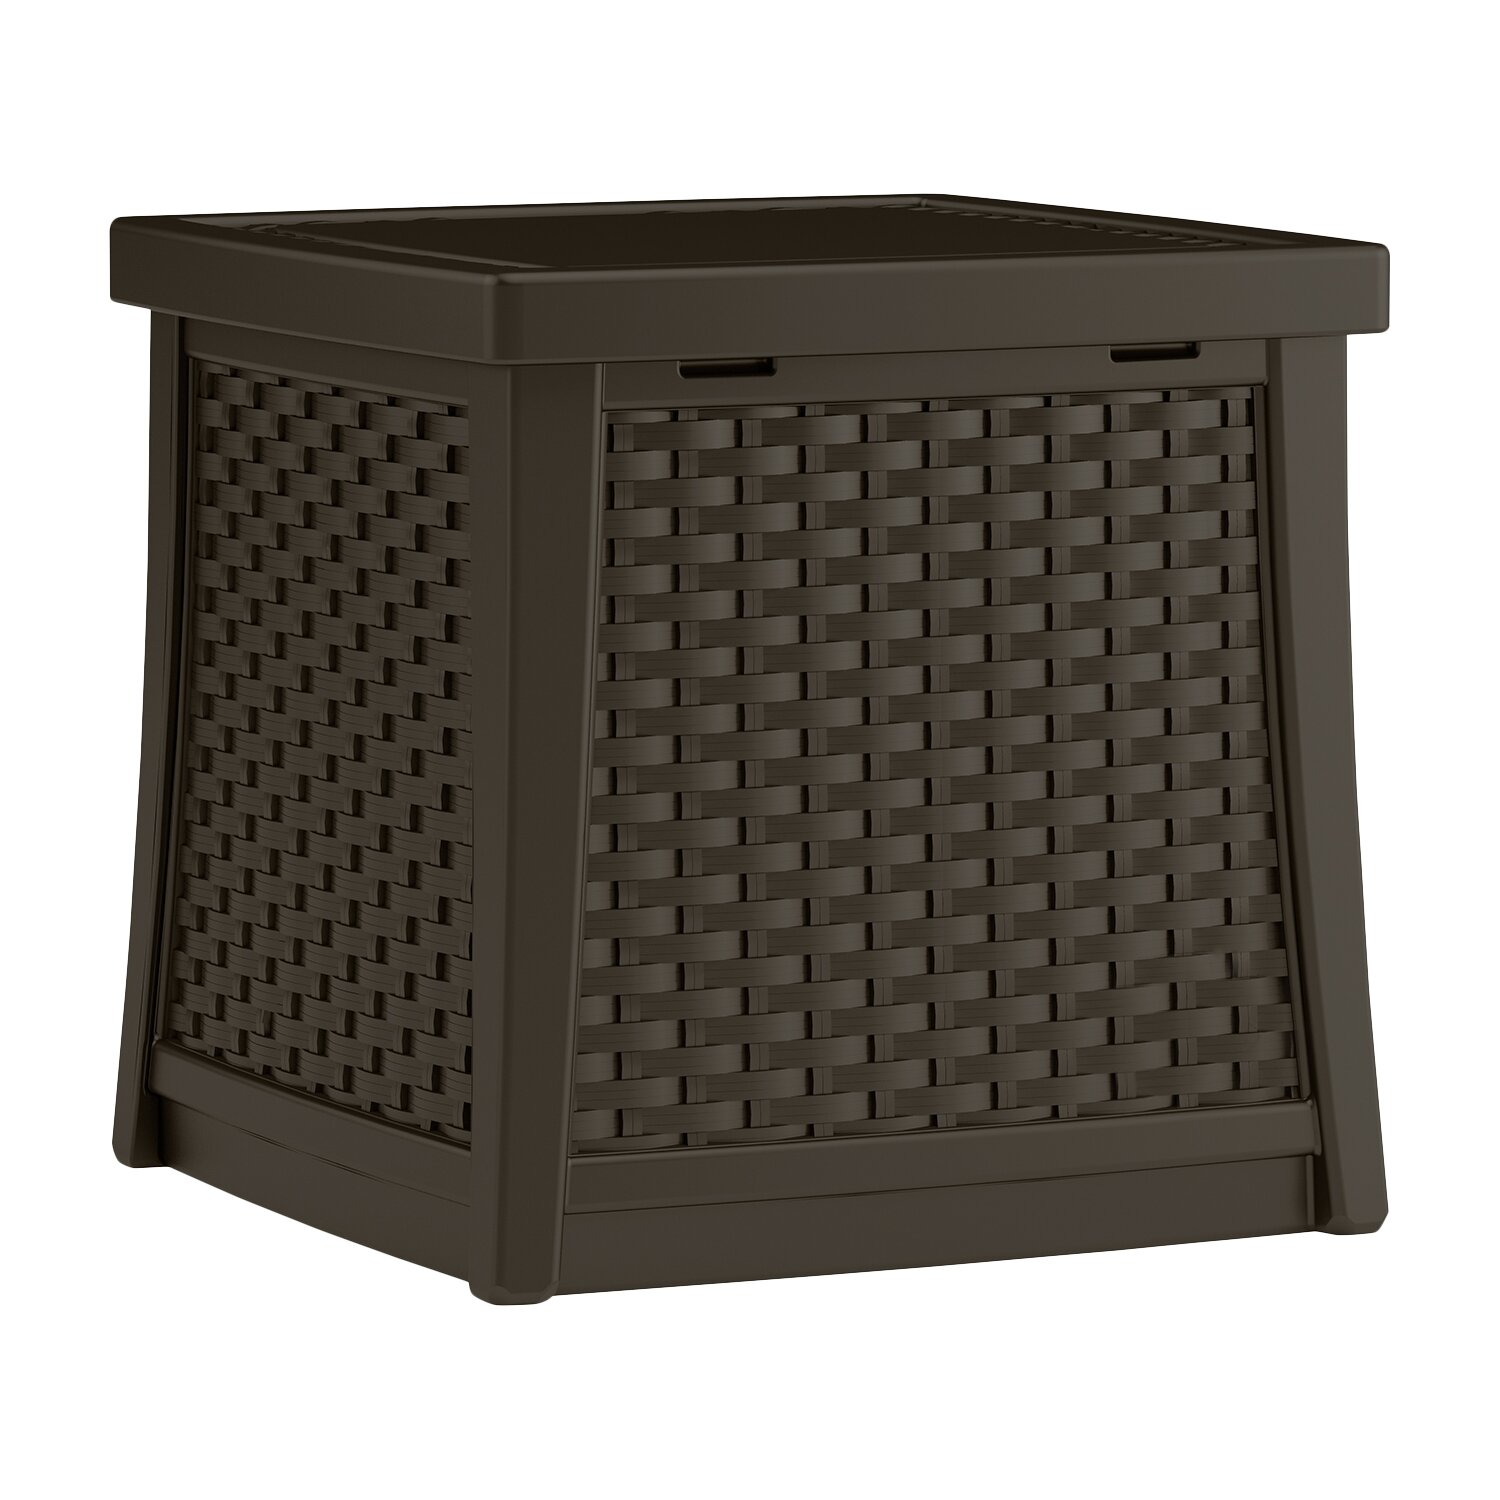 Suncast Elements Coffee Table With Storage Java: Suncast Cube 13 Gallon Resin Deck Side Table With Storage